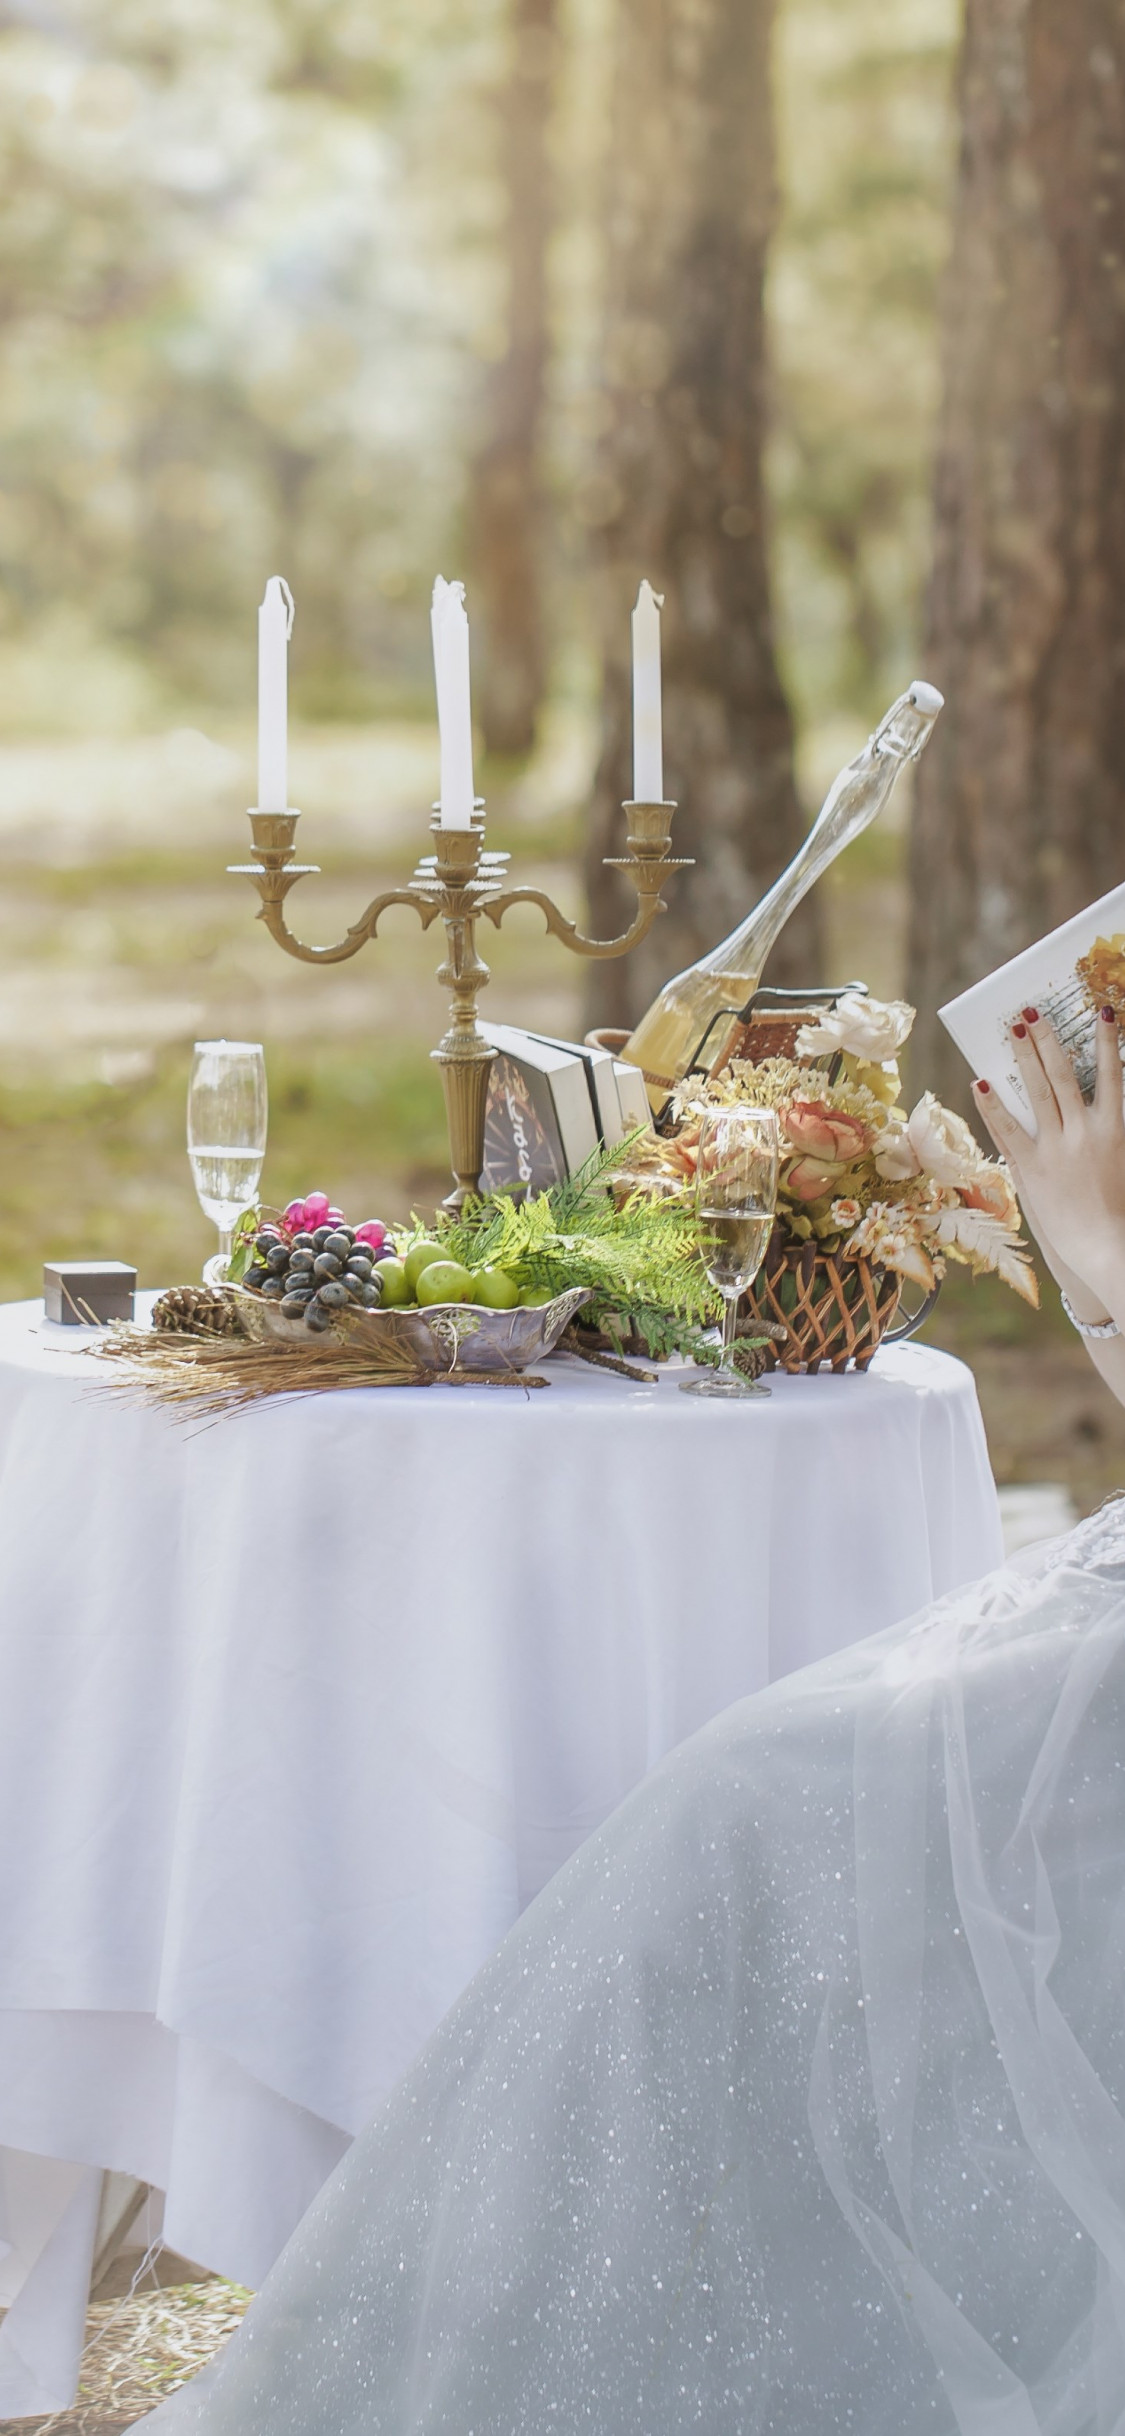 Bride in wedding outdoor scenery | 1125x2436 wallpaper